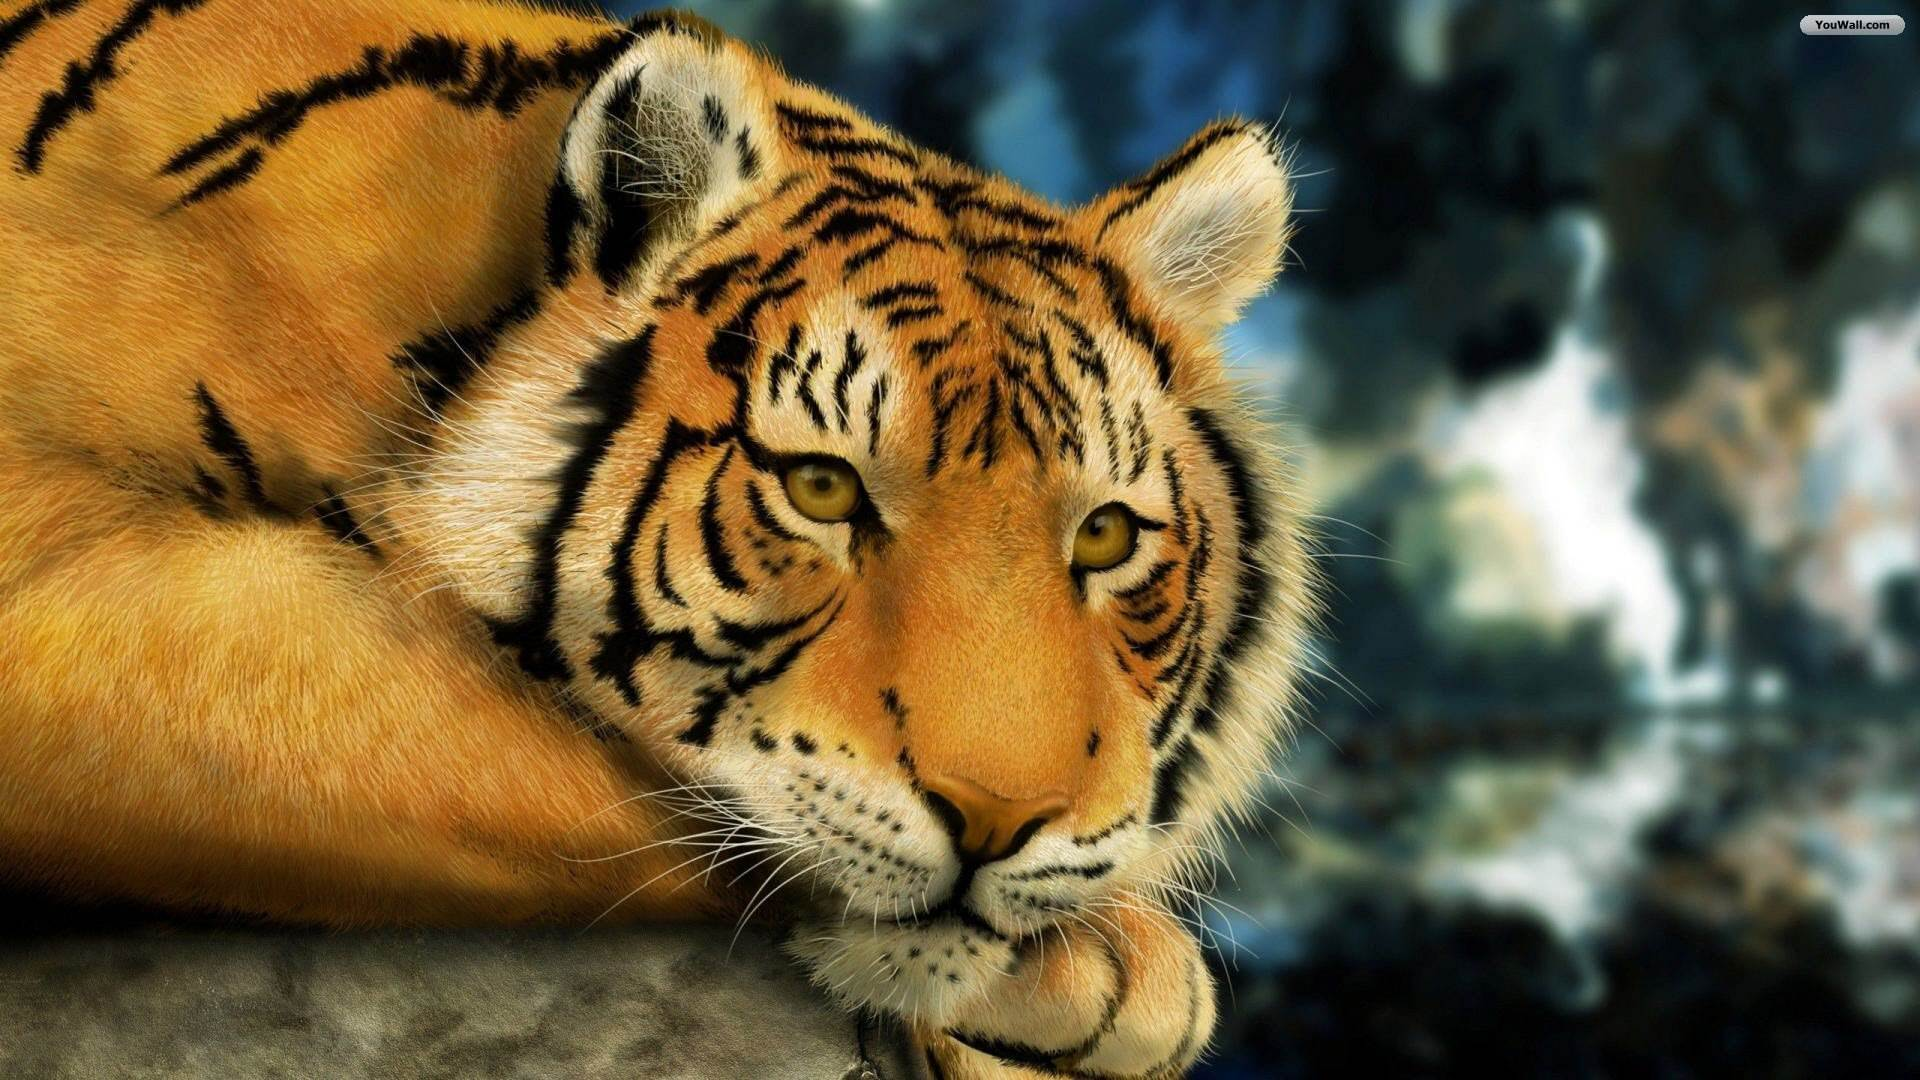 White Tiger HD Wallpapers  Backgrounds  Wallpaper  1920x1080